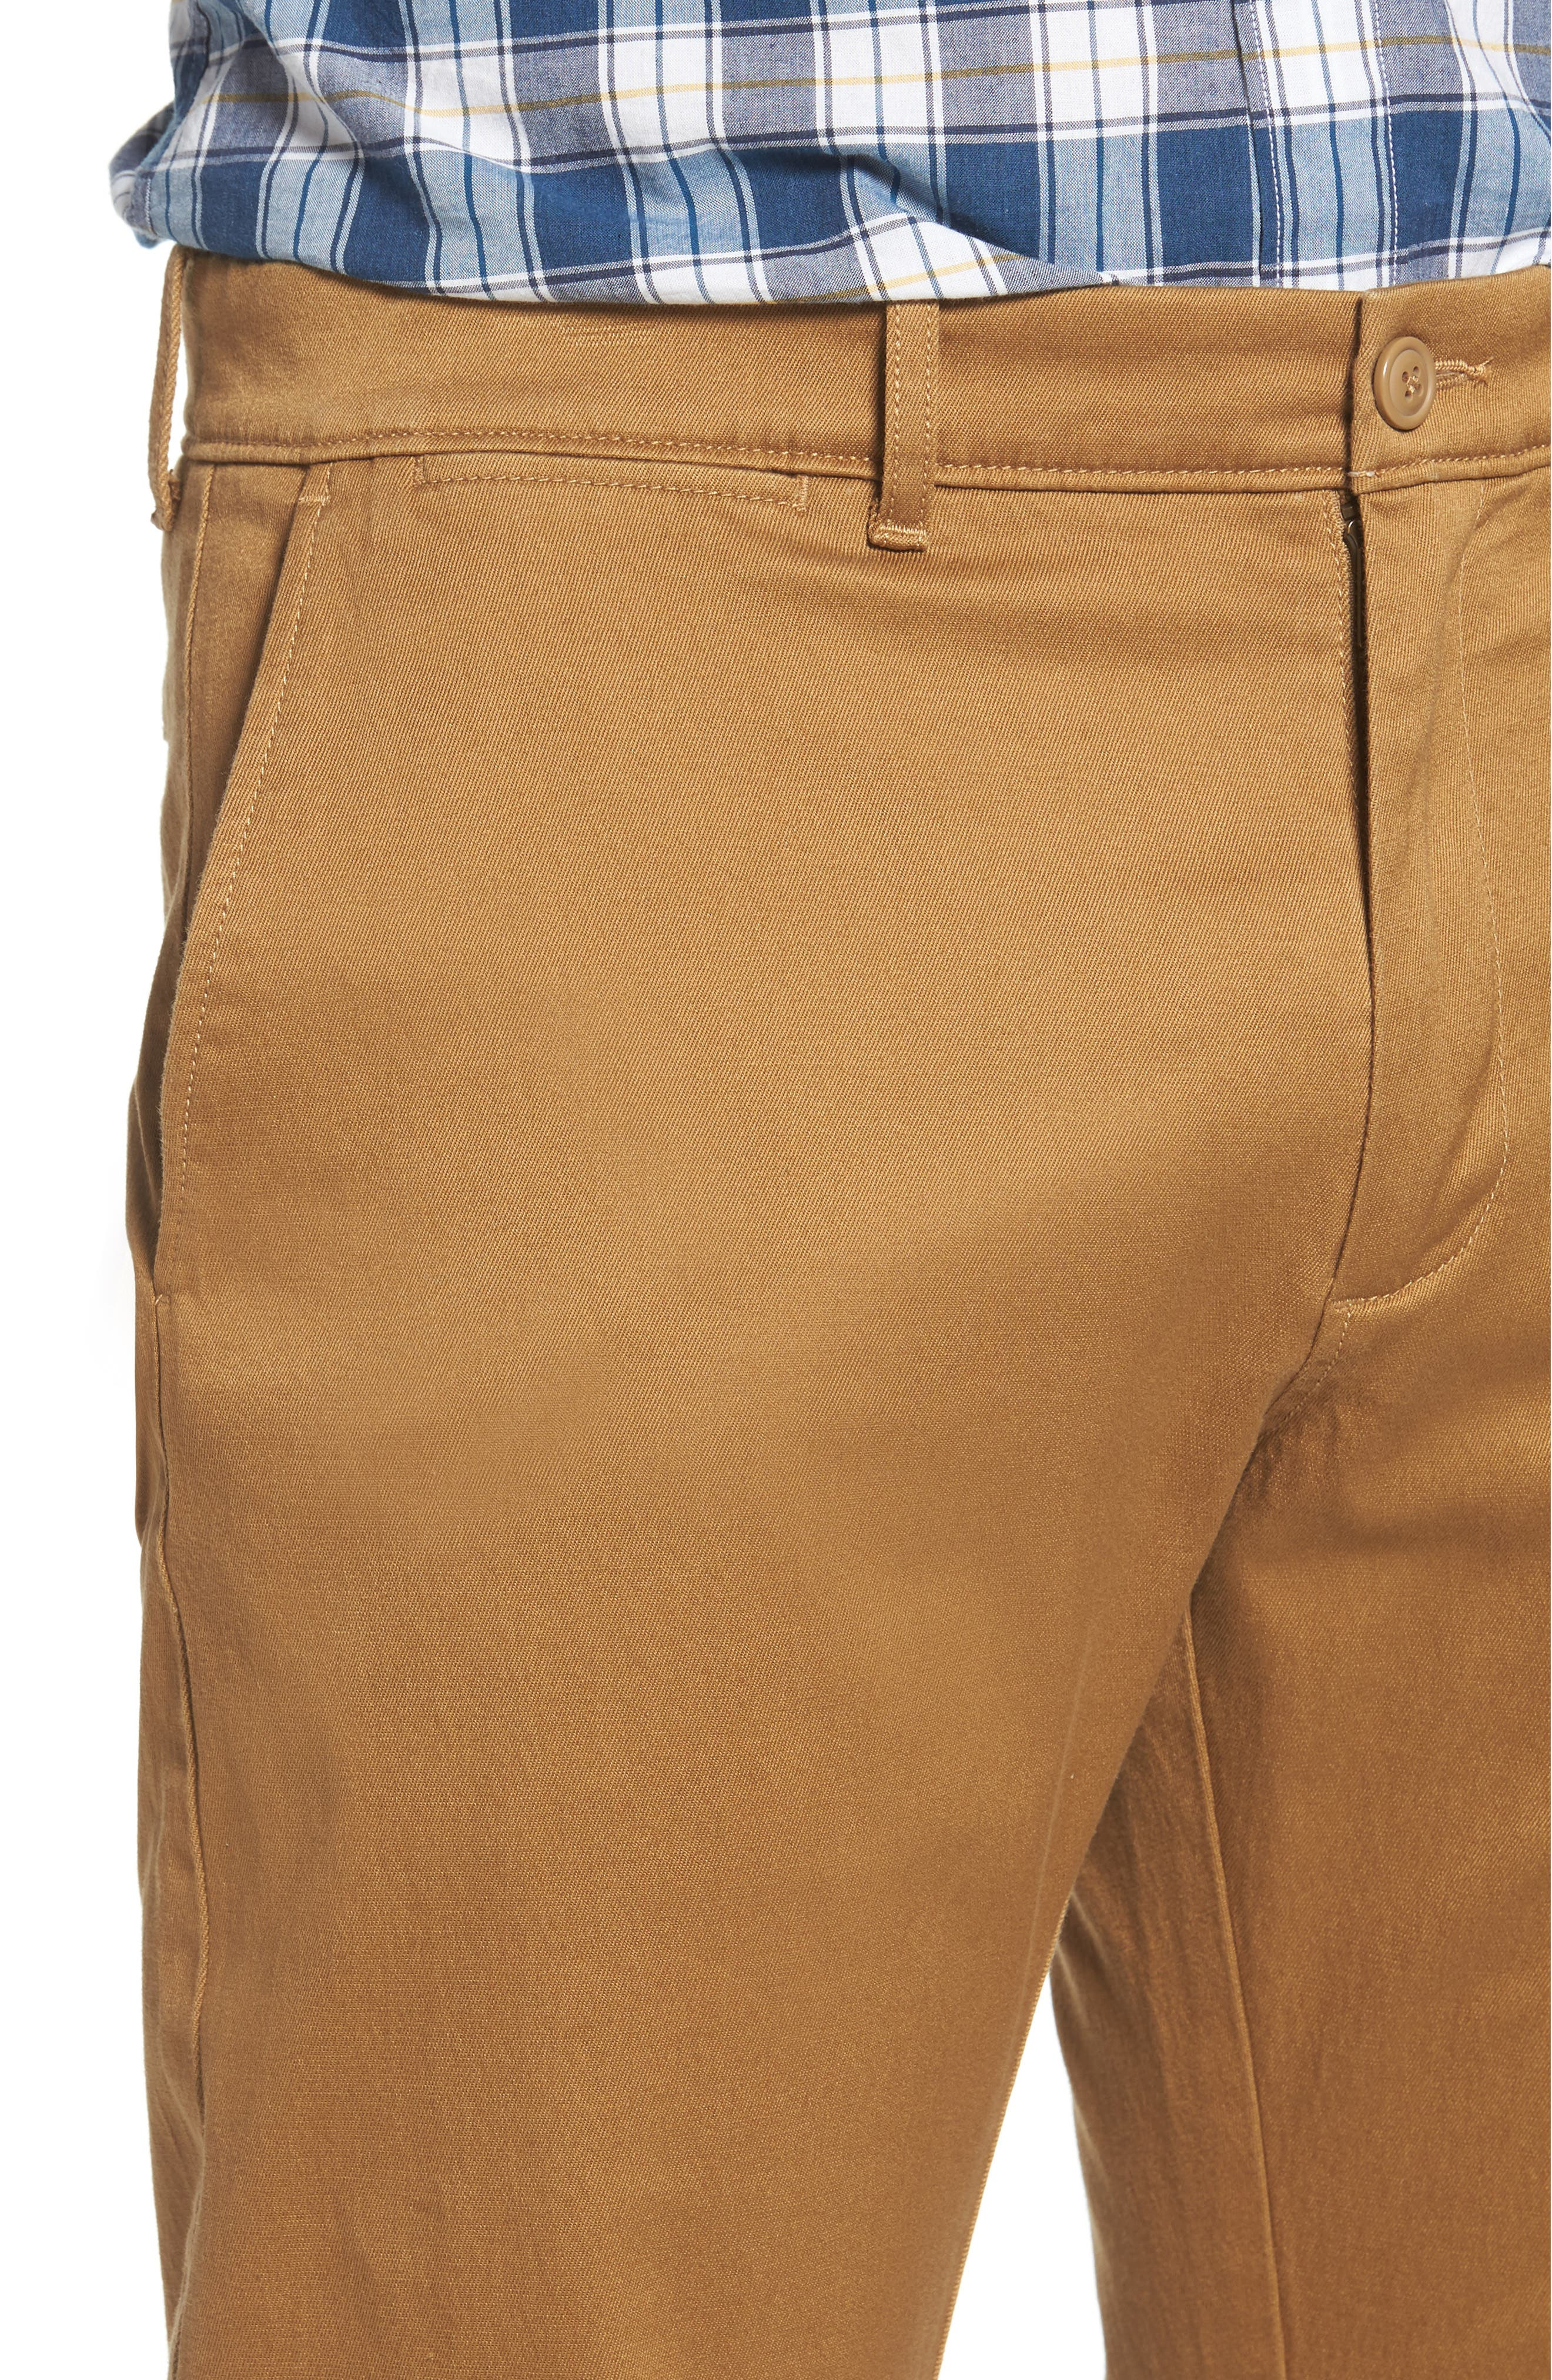 484 Slim Fit Stretch Chino Pants,                             Alternate thumbnail 36, color,